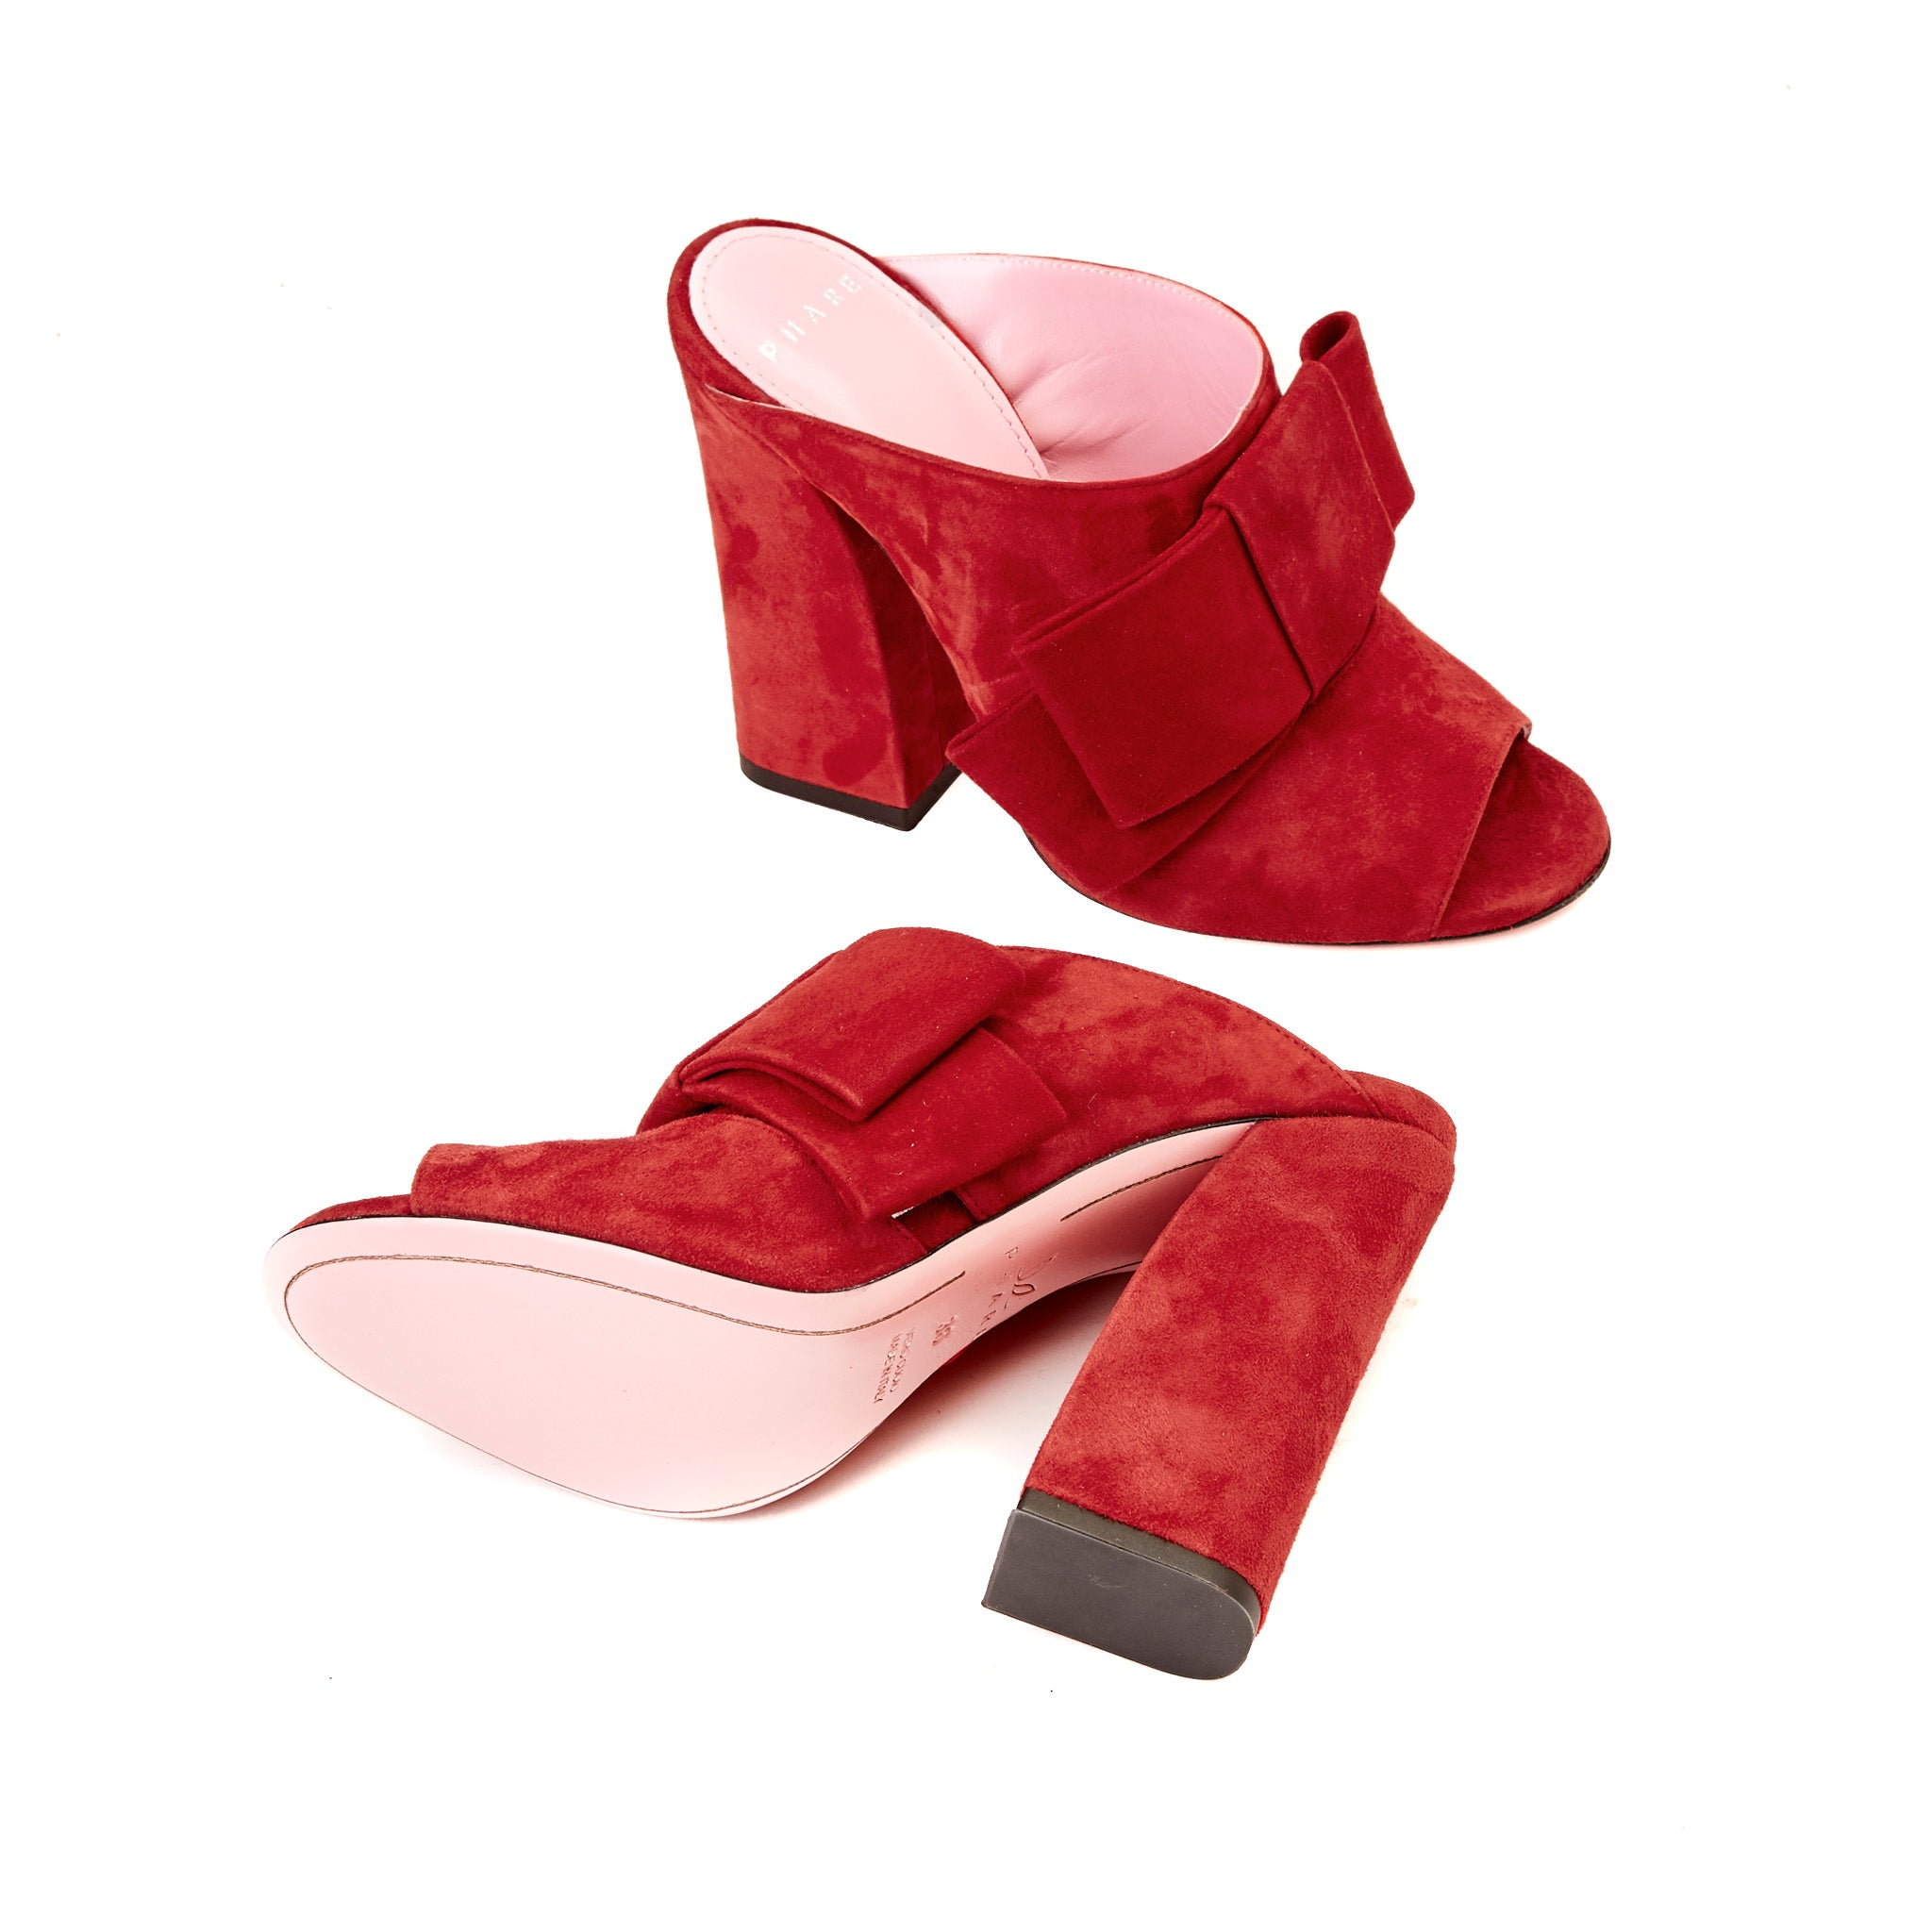 Phare High heel block heel mule with bow in rosso suede back view